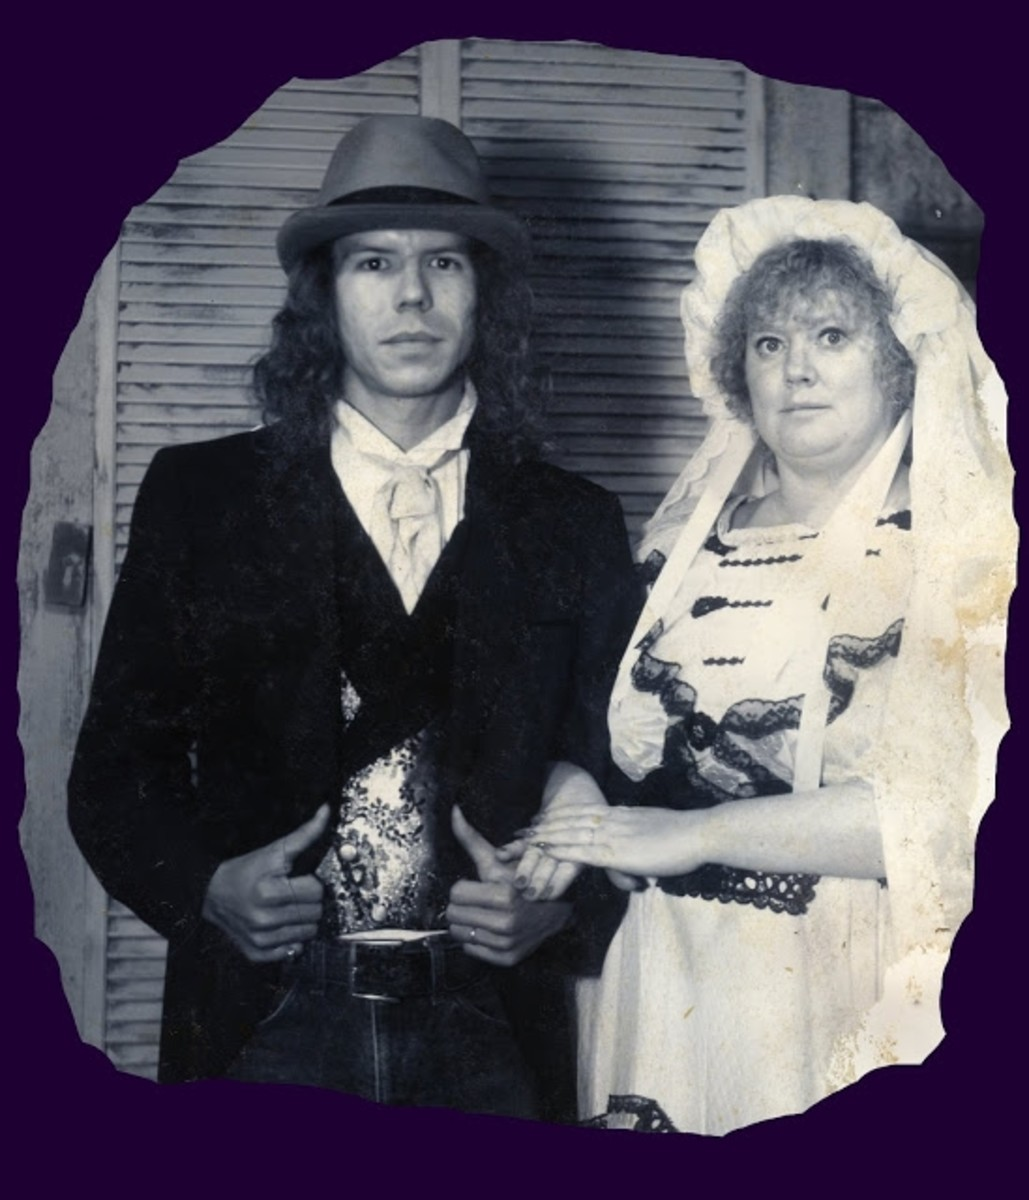 1983 - Gary and Ann - We went to Vegas to get married so have no photos. When we went with the rest of the family to Knott's we decided to have an official photo taken.